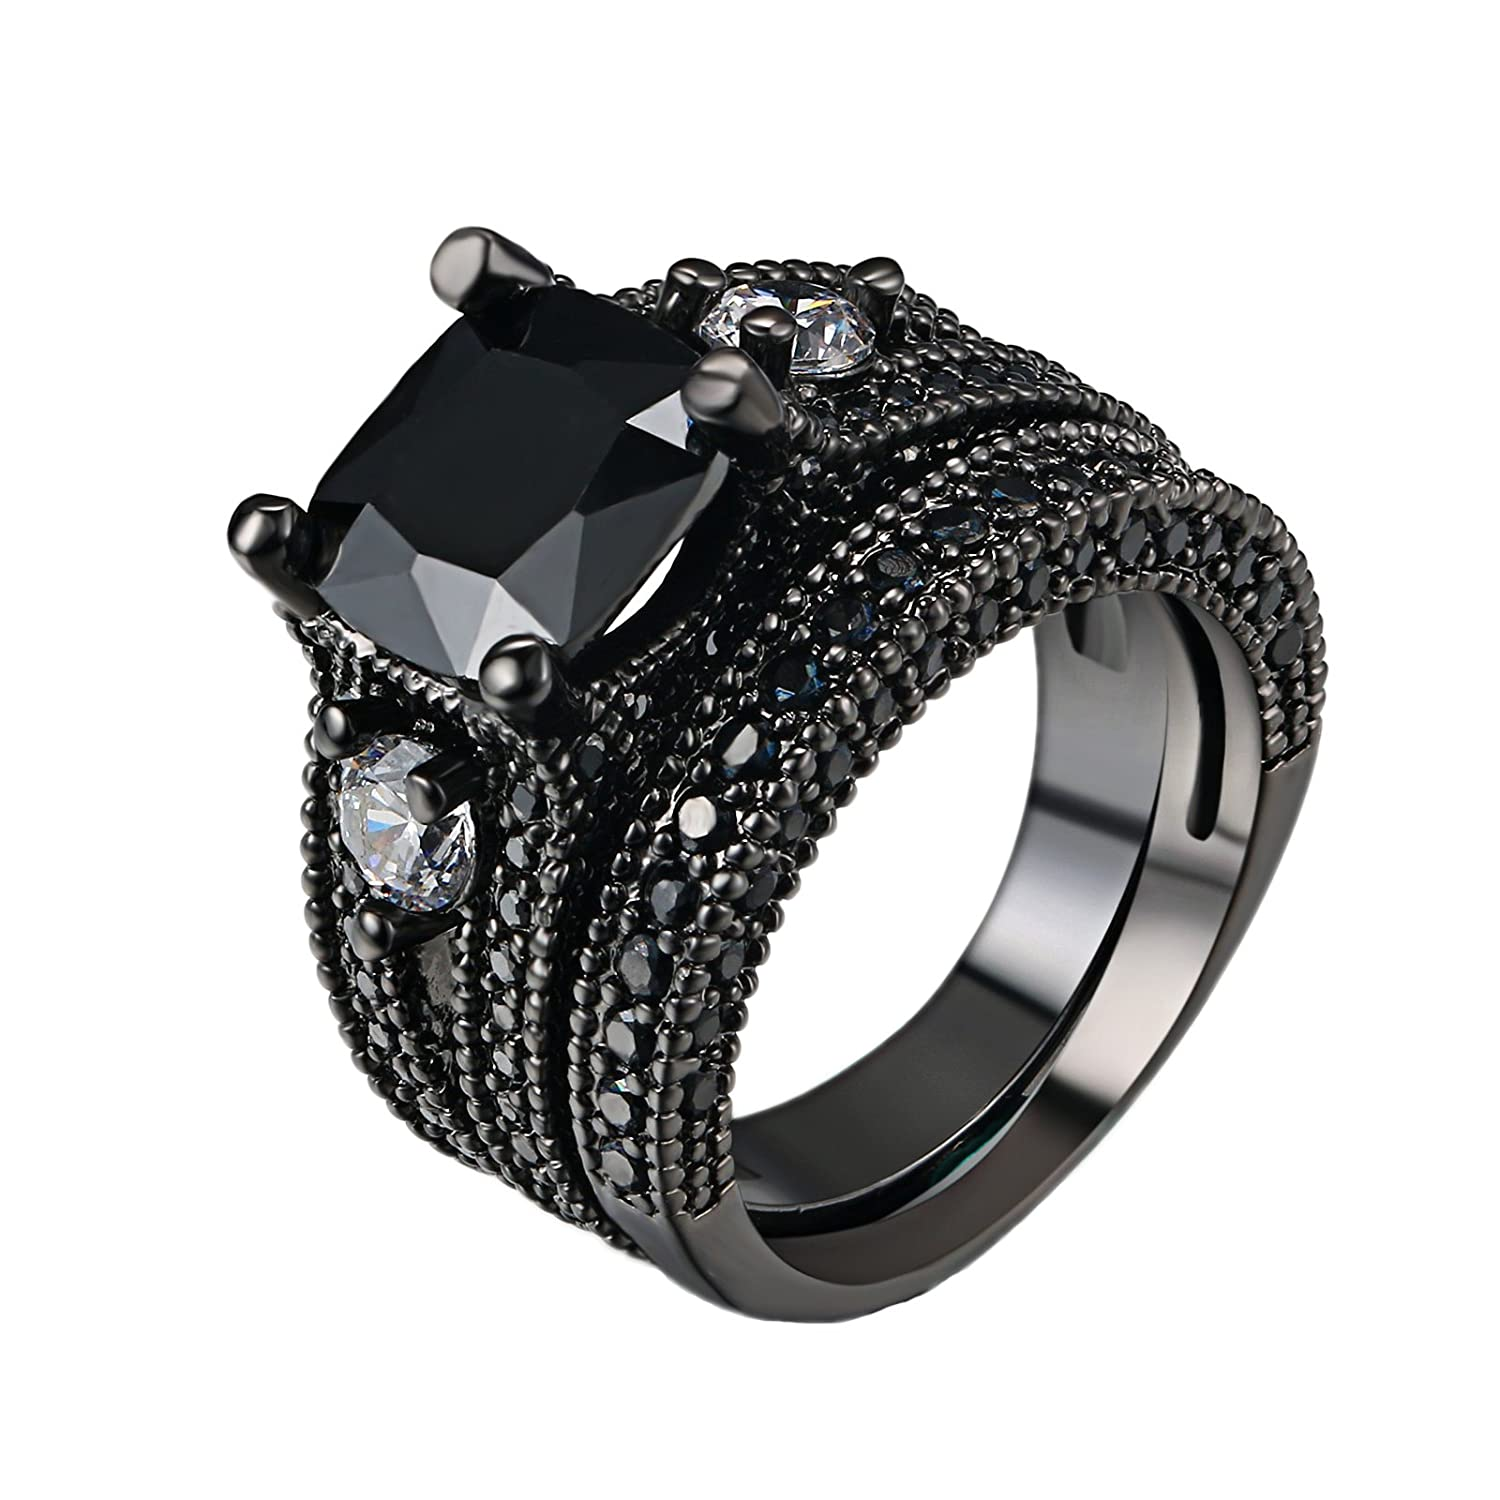 D.B.MOOD 2 PCS Cushion Cut Split Shank Black CZ Cubic Zirconia Diamond Halo Bridal Ring Set DBM-CA013